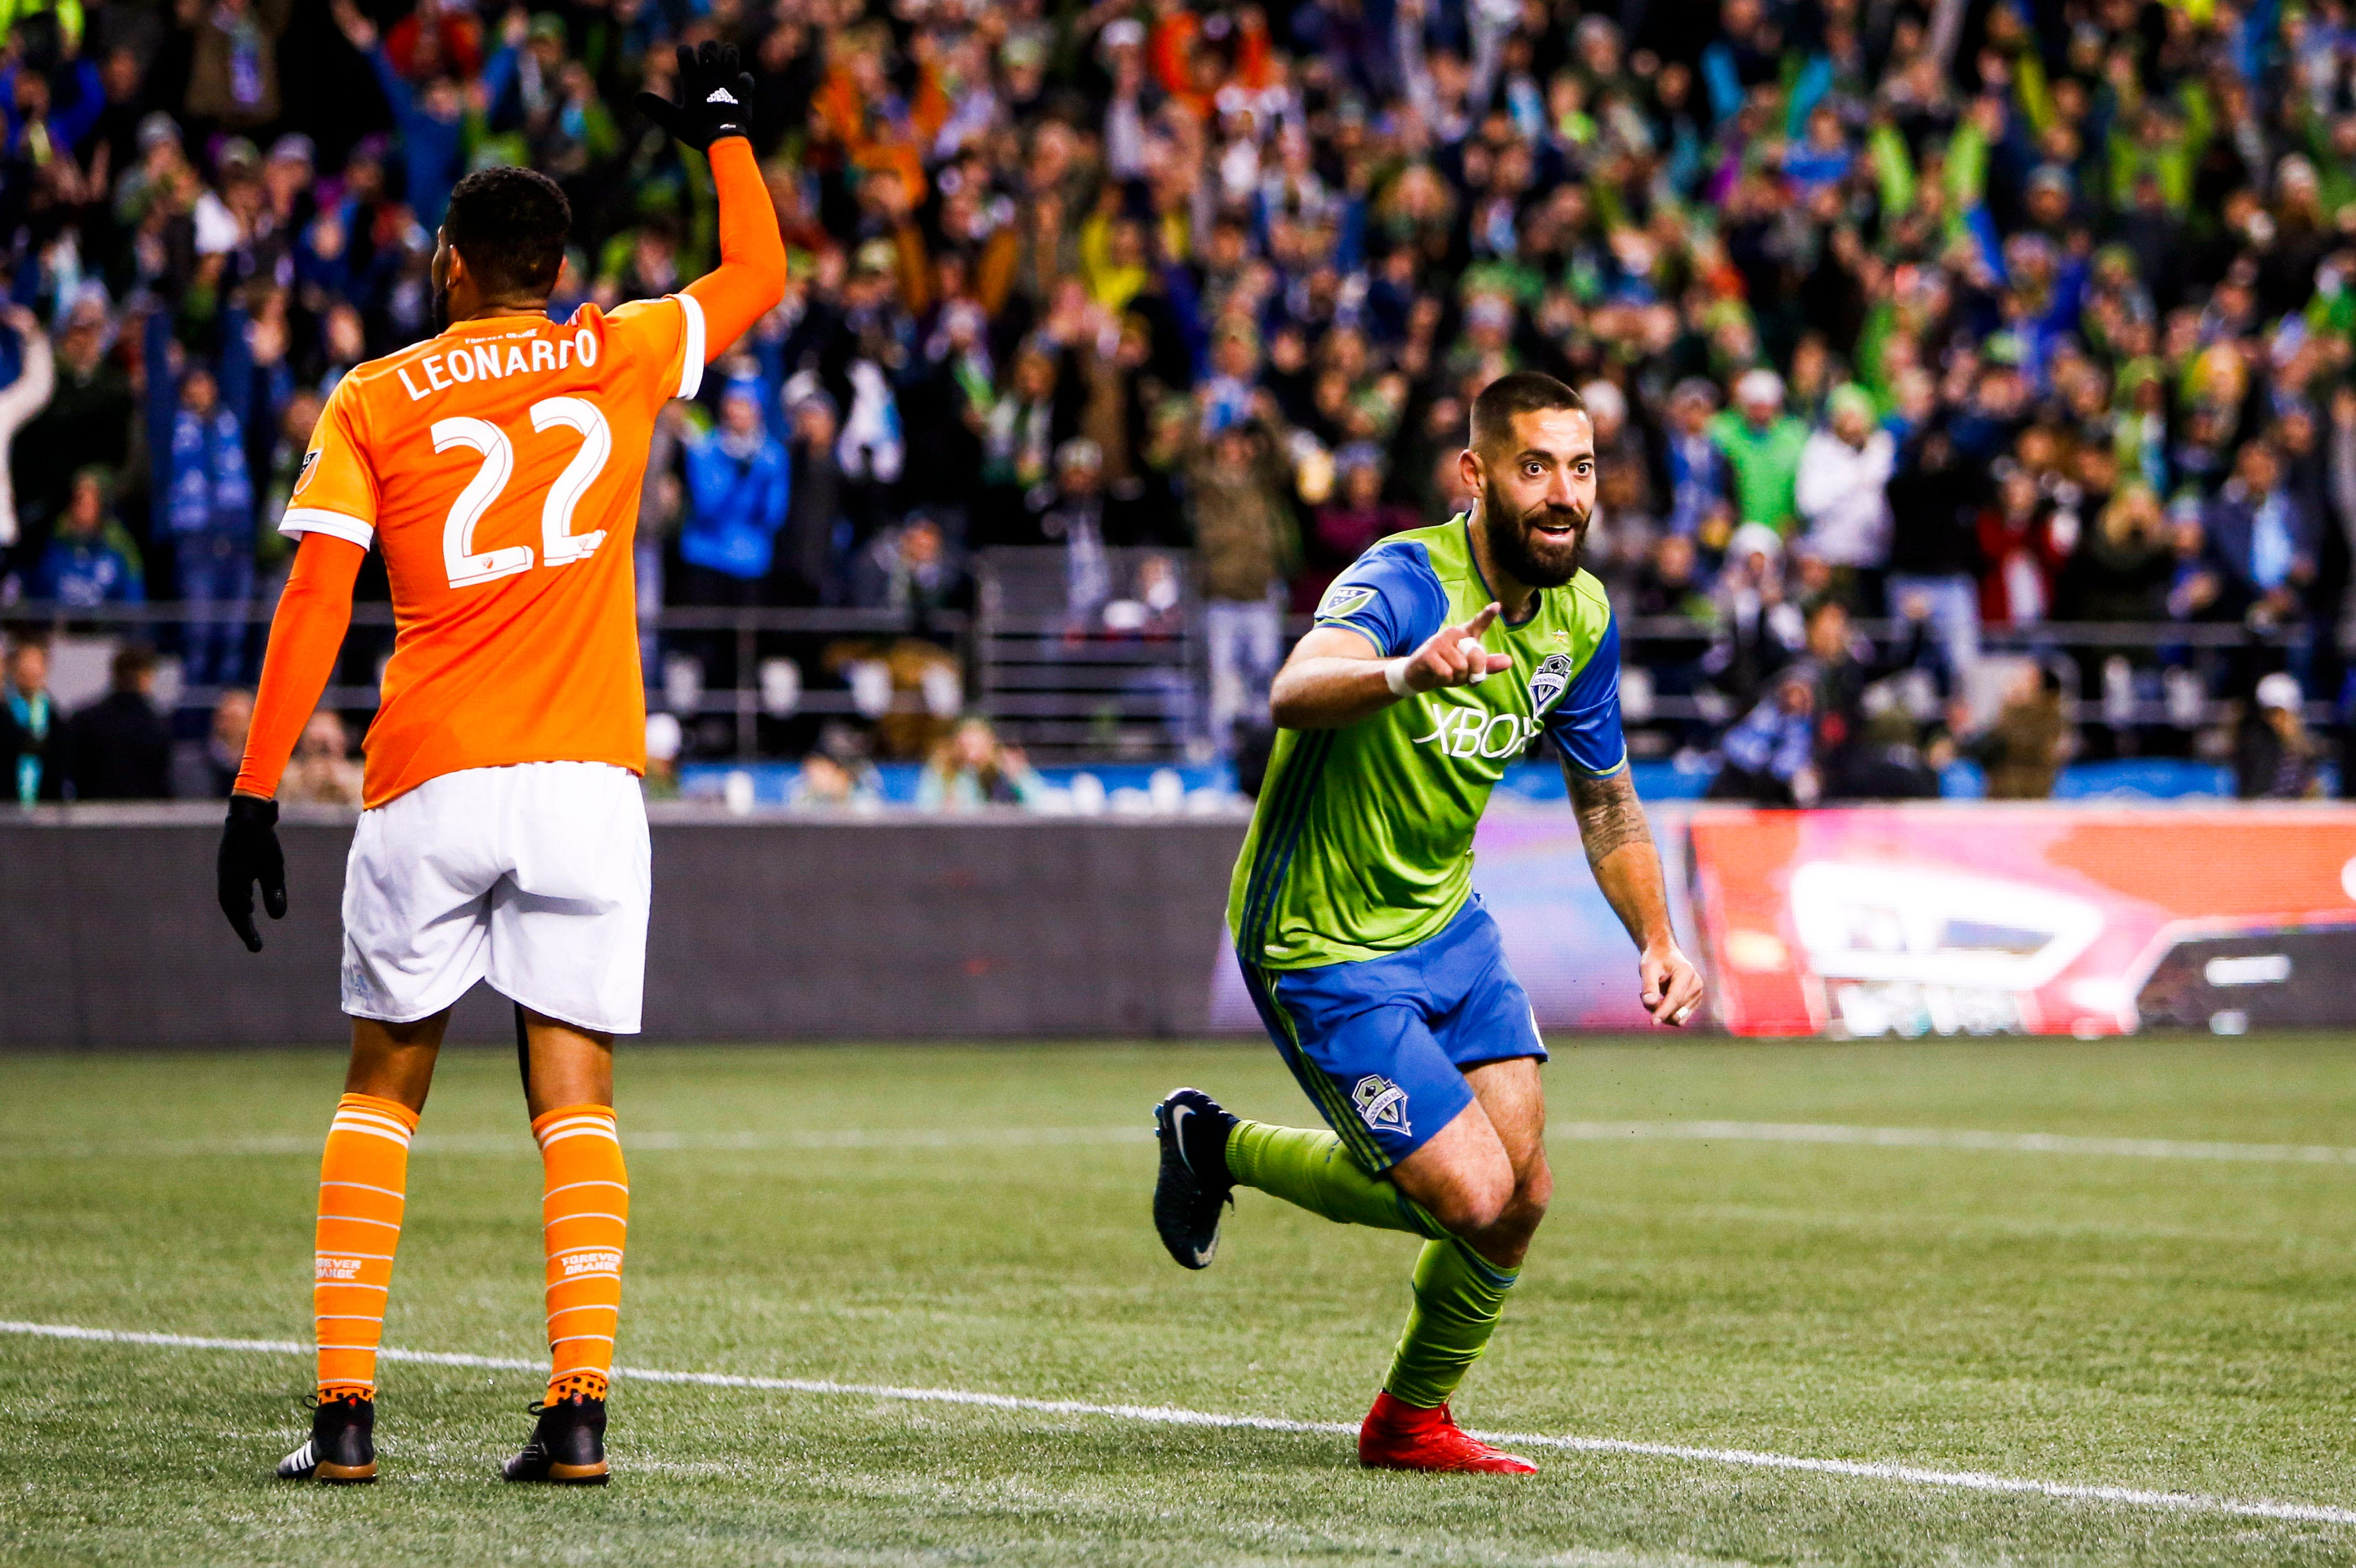 Seattle Sounders return to MLS Cup after rout of Houston Dynamo